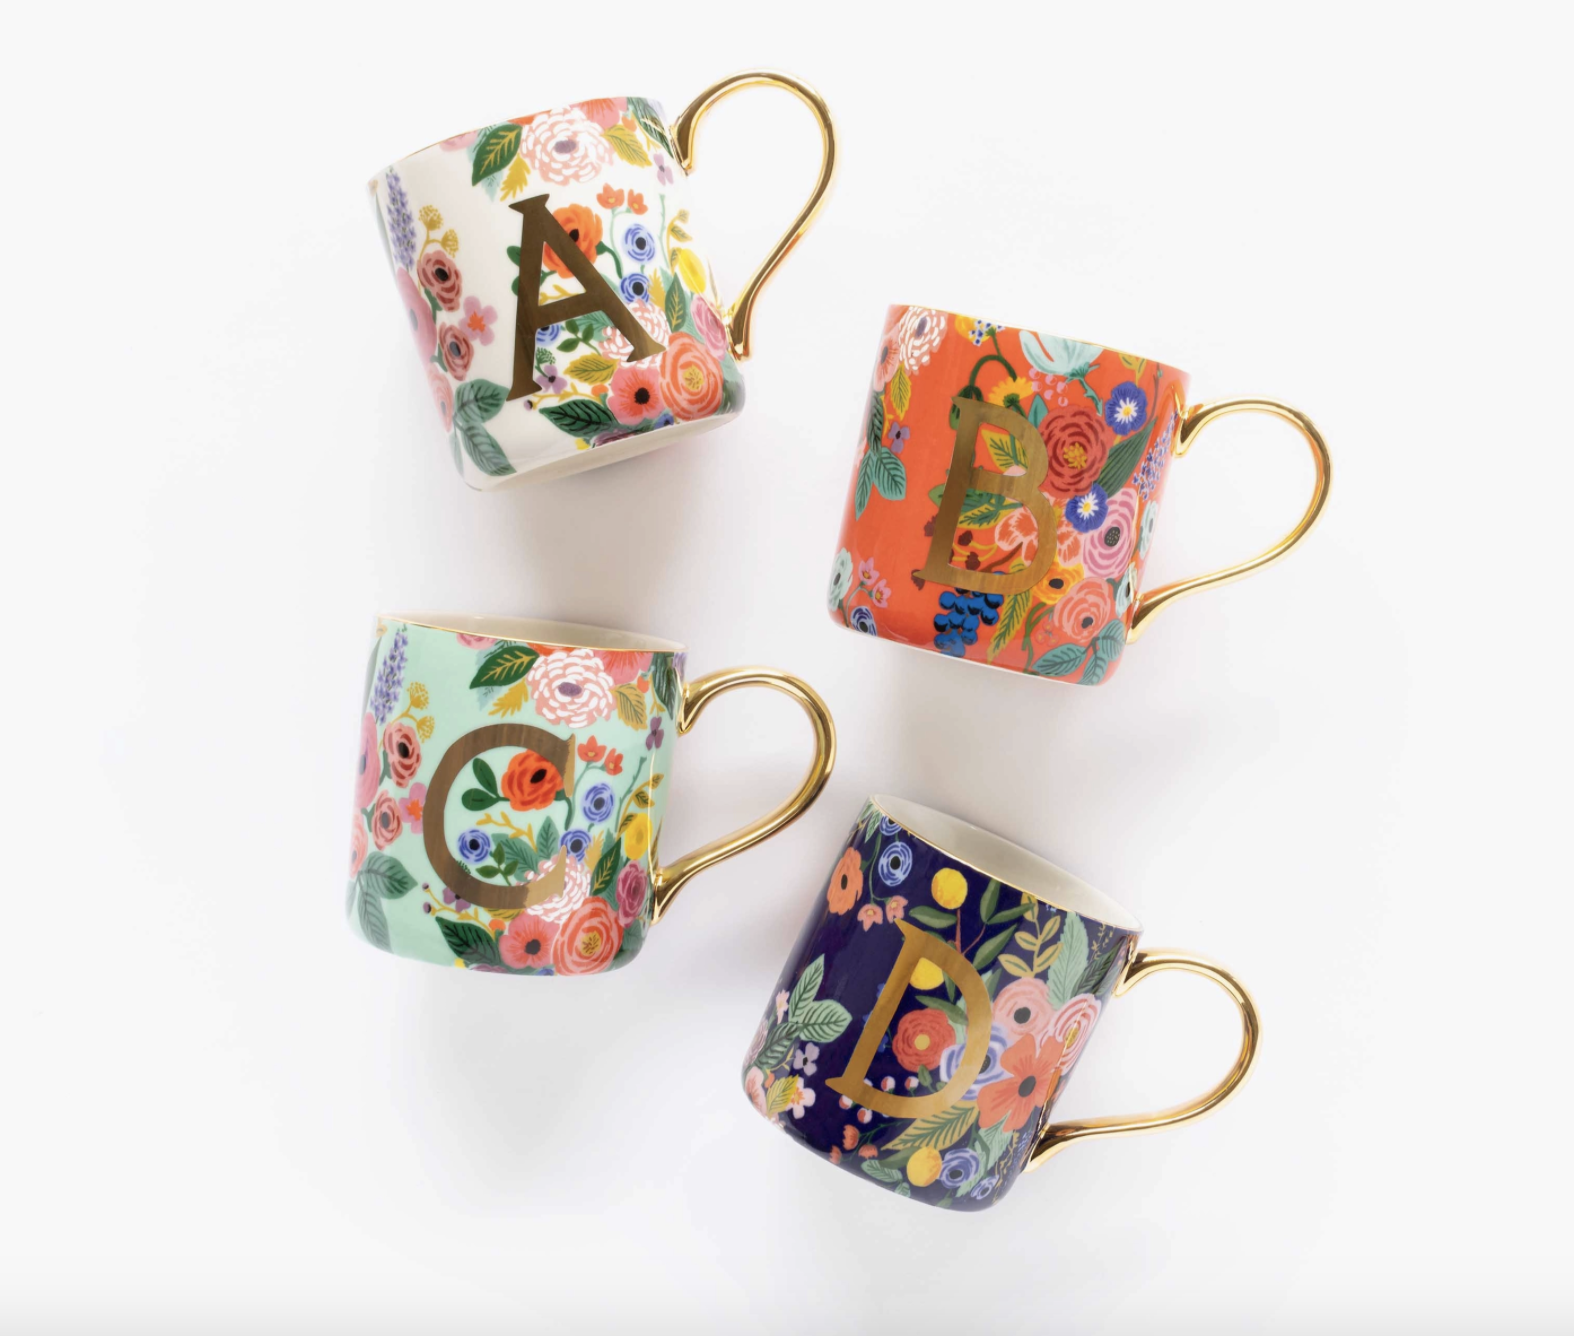 the mugs in different floral designs